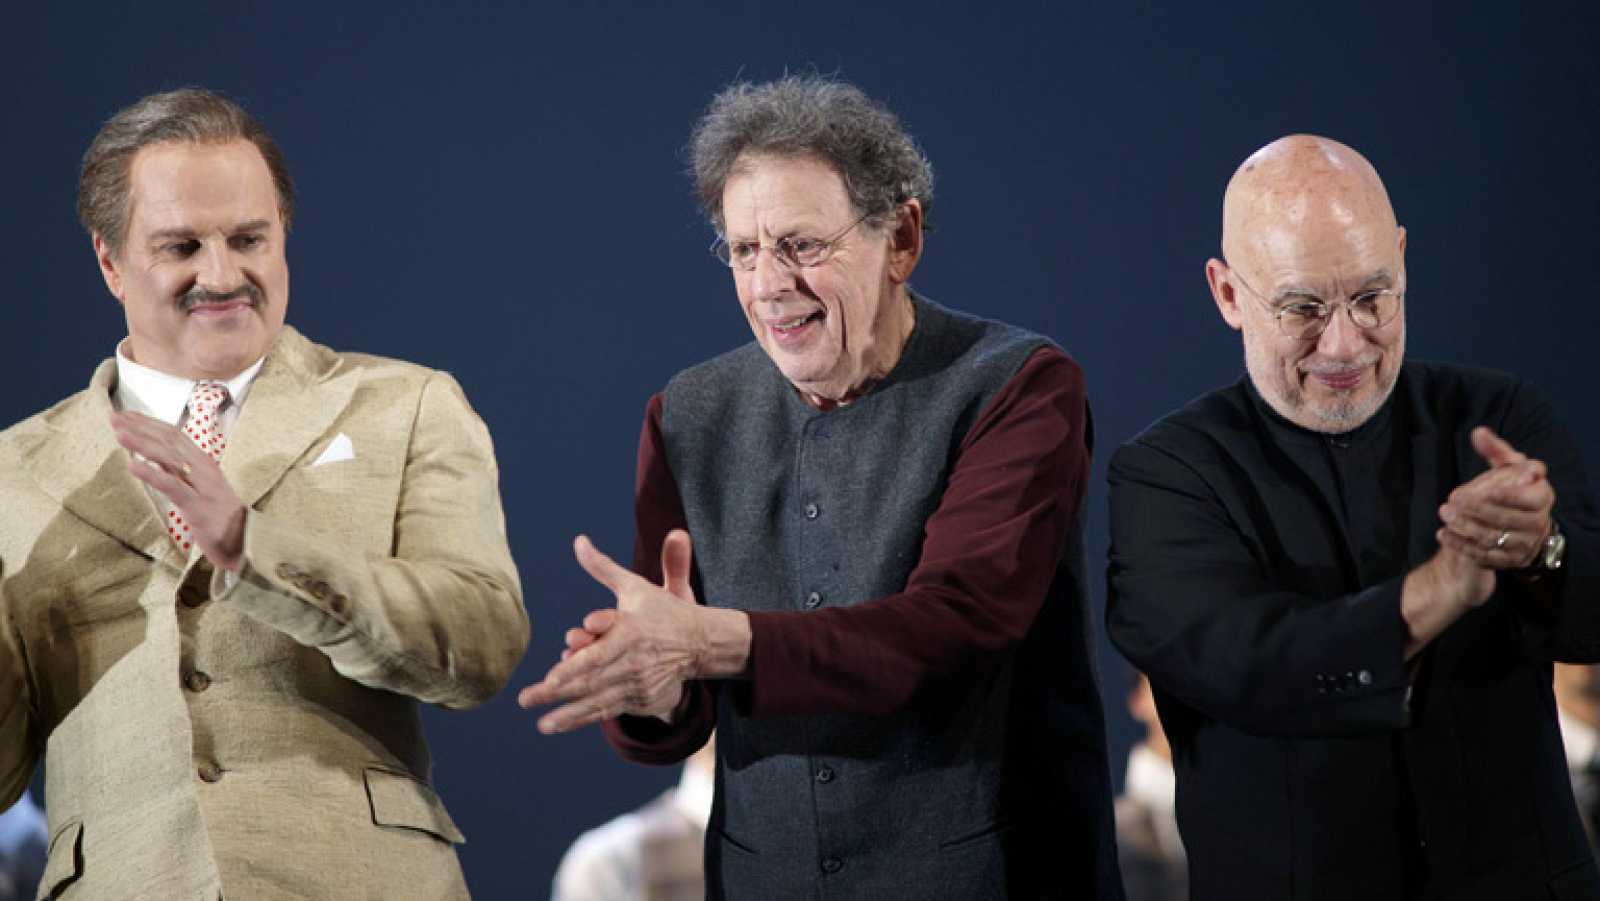 Programa de mano - La ópera 'The perfect american', de Philip Glass, estrenada en el Teatro Real